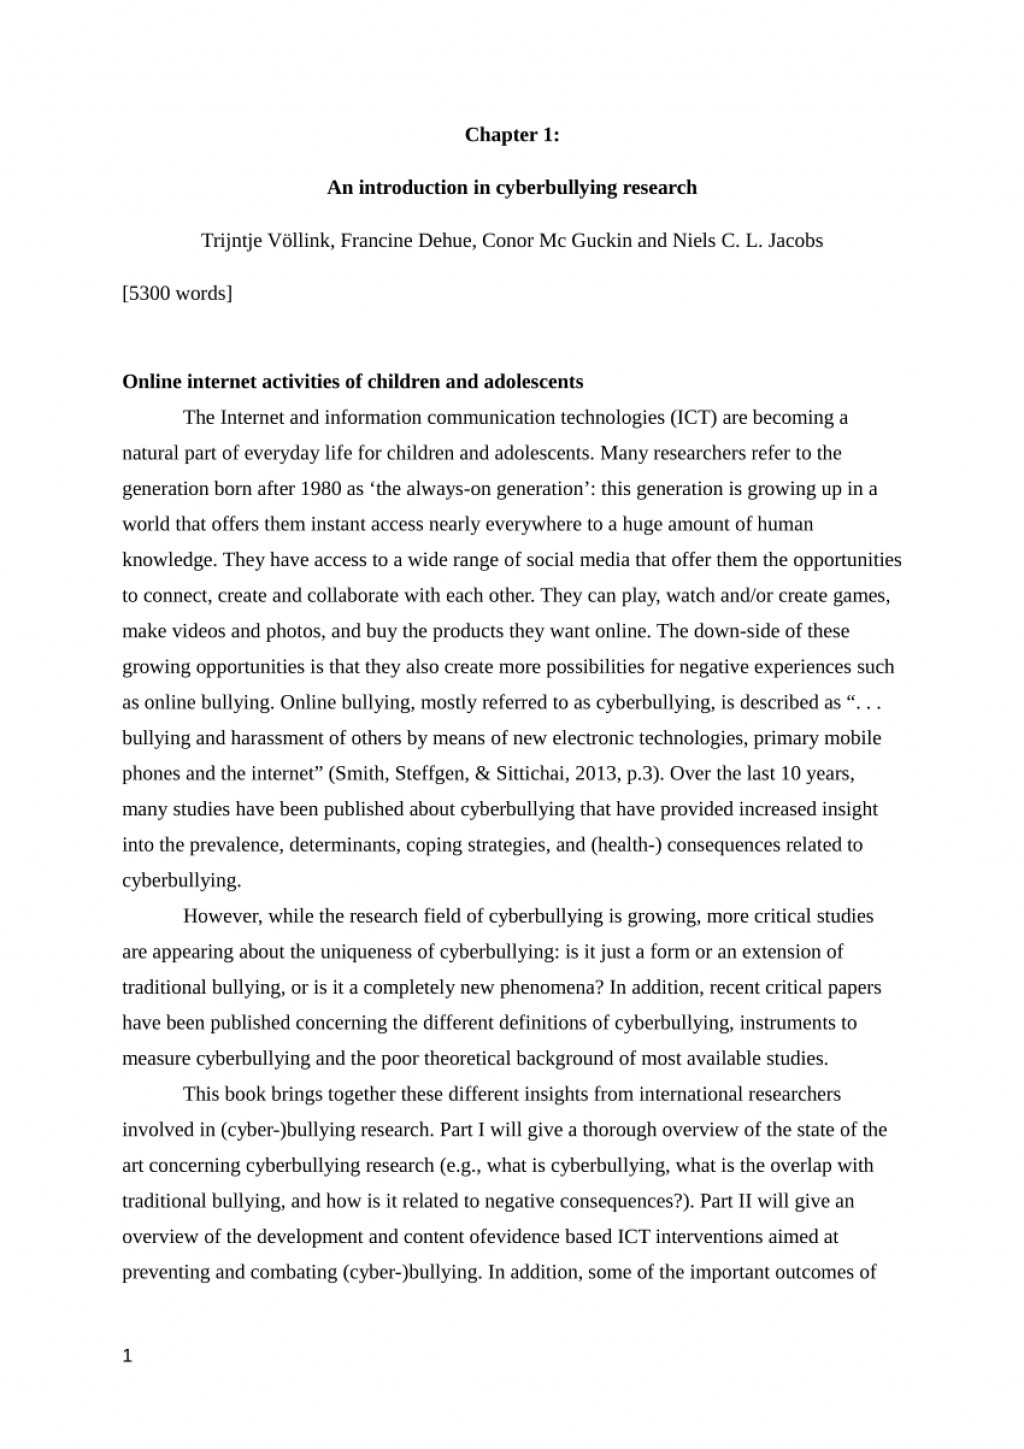 001 Cyberbullying Research Paper Pdf Unique Effects Of Large